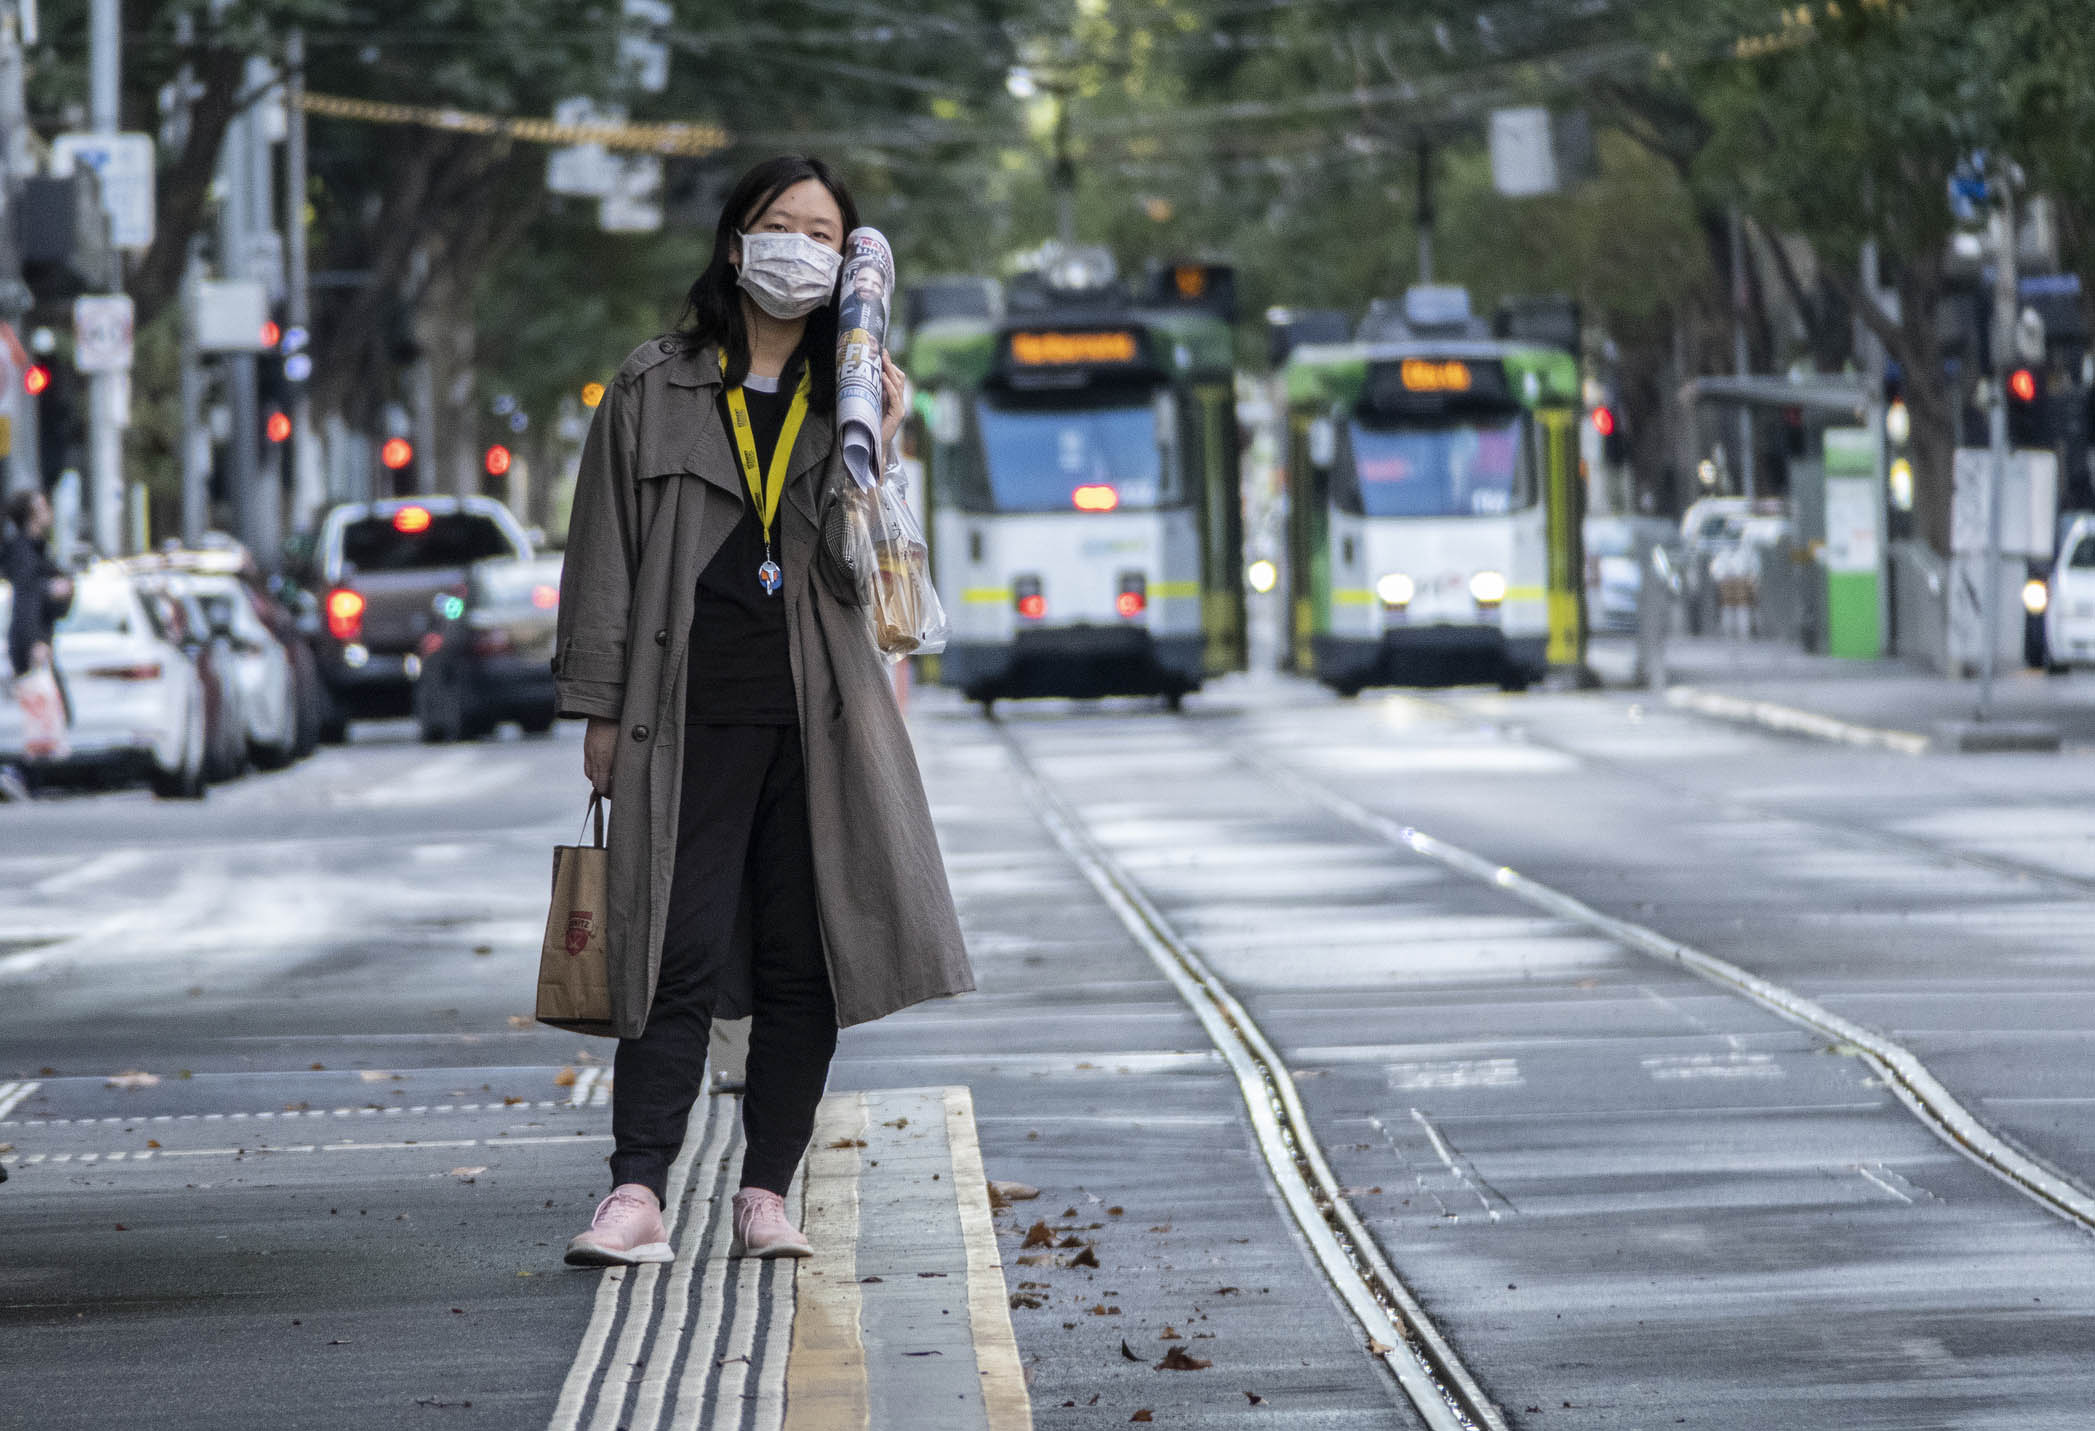 Image shows a person wearing a face mask while waiting at a tram stop during the COVID-19 pandemic.